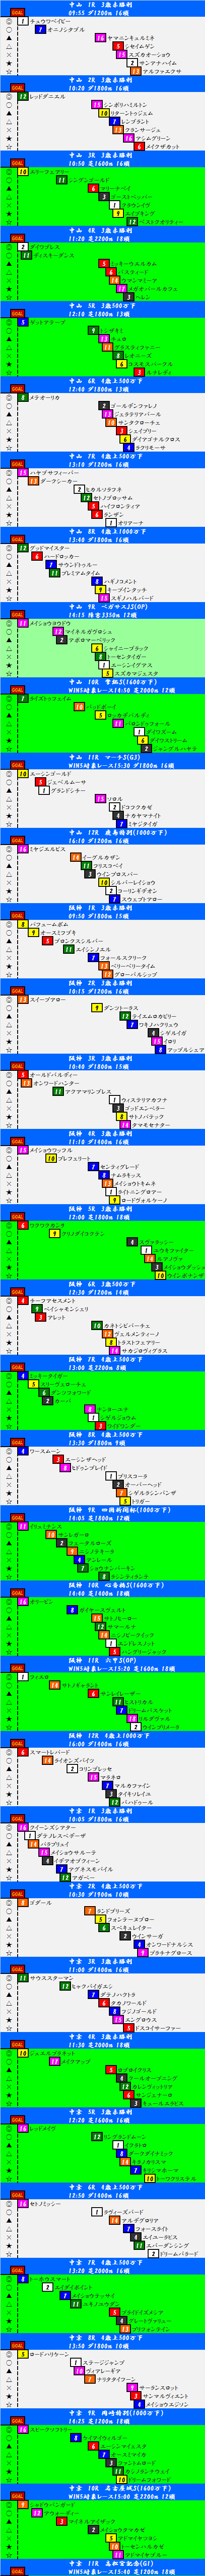 201403301.png